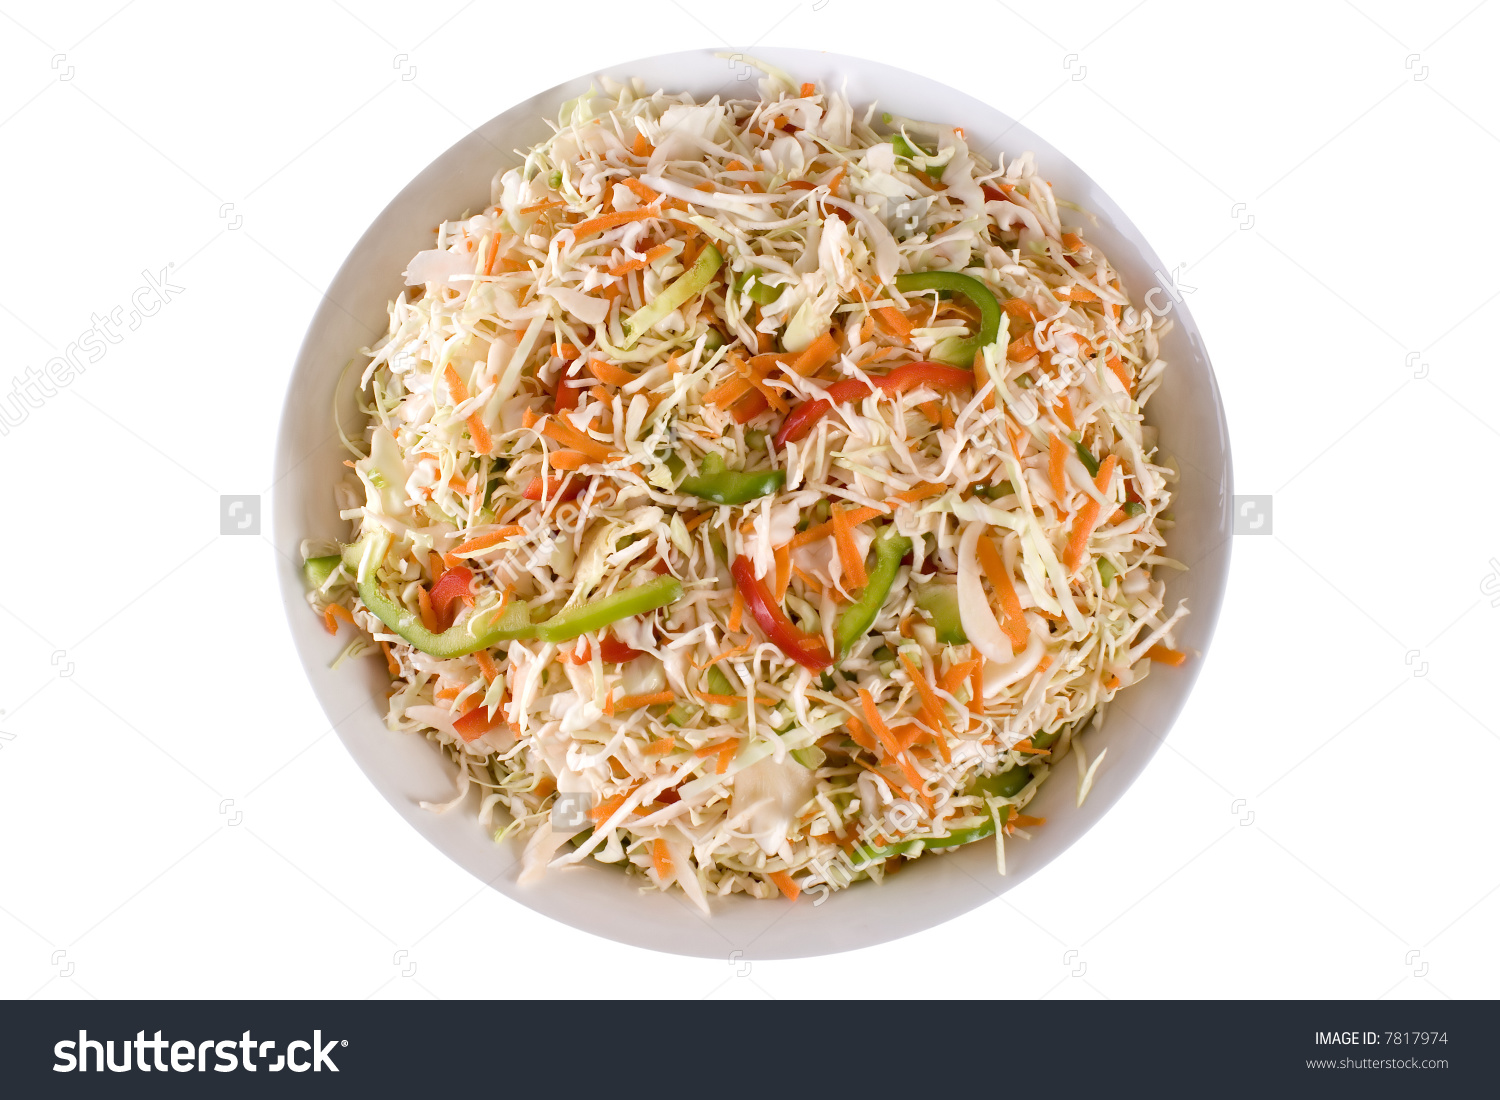 Traditional Healthy Coleslaw Salad. Cabbage, Celery, Bell Peppers.